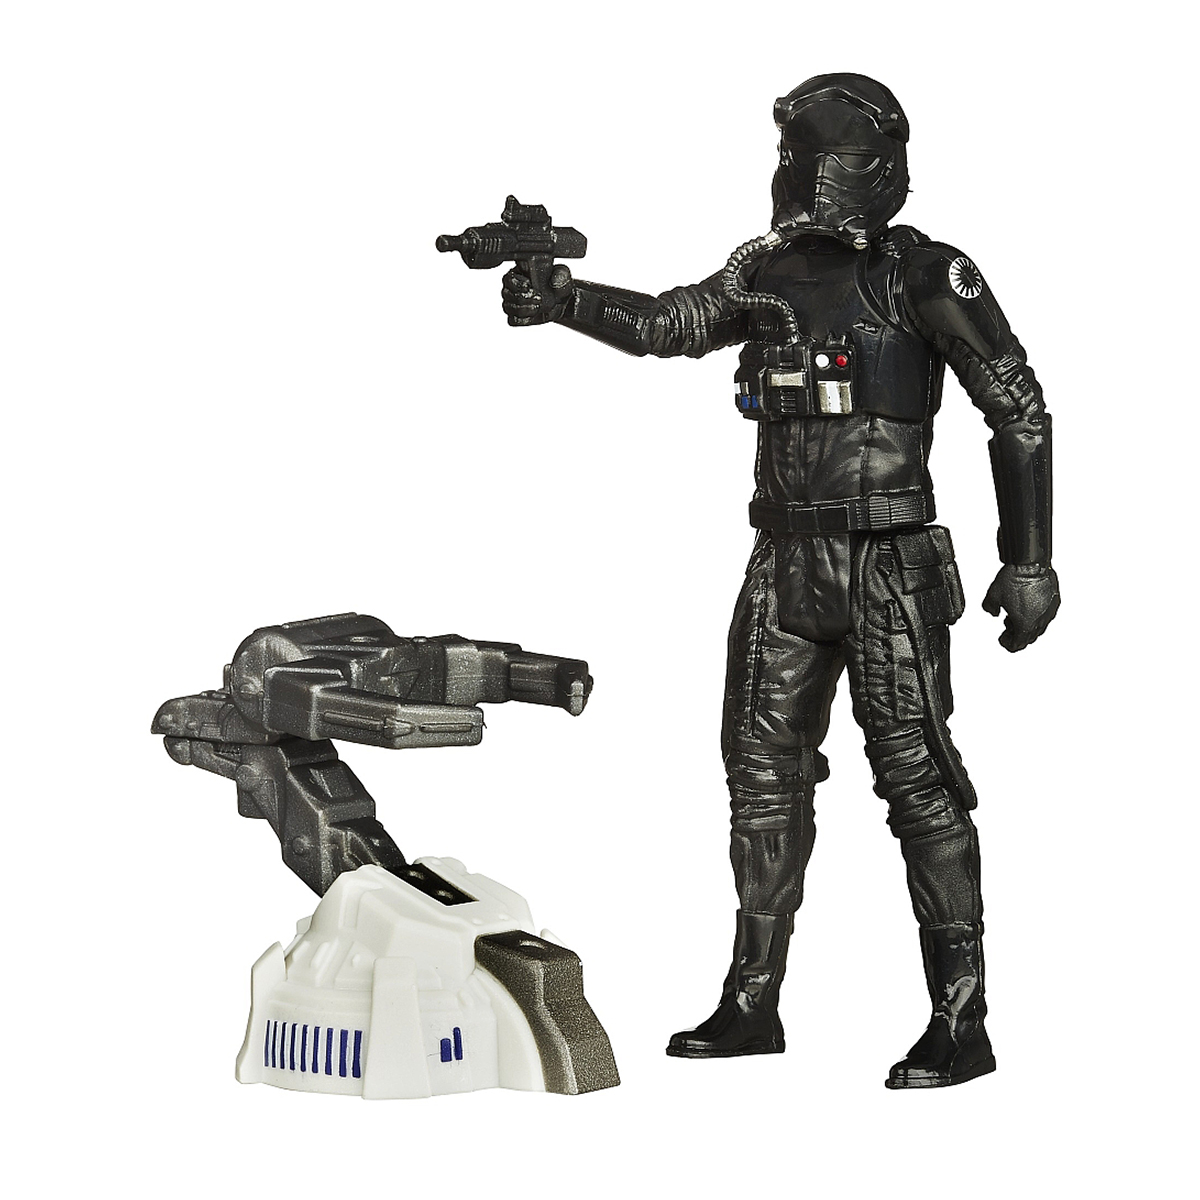 Set 2 Figurine Star Wars The Force Awakens - Tie First Order Space Mission, 9.5 cm